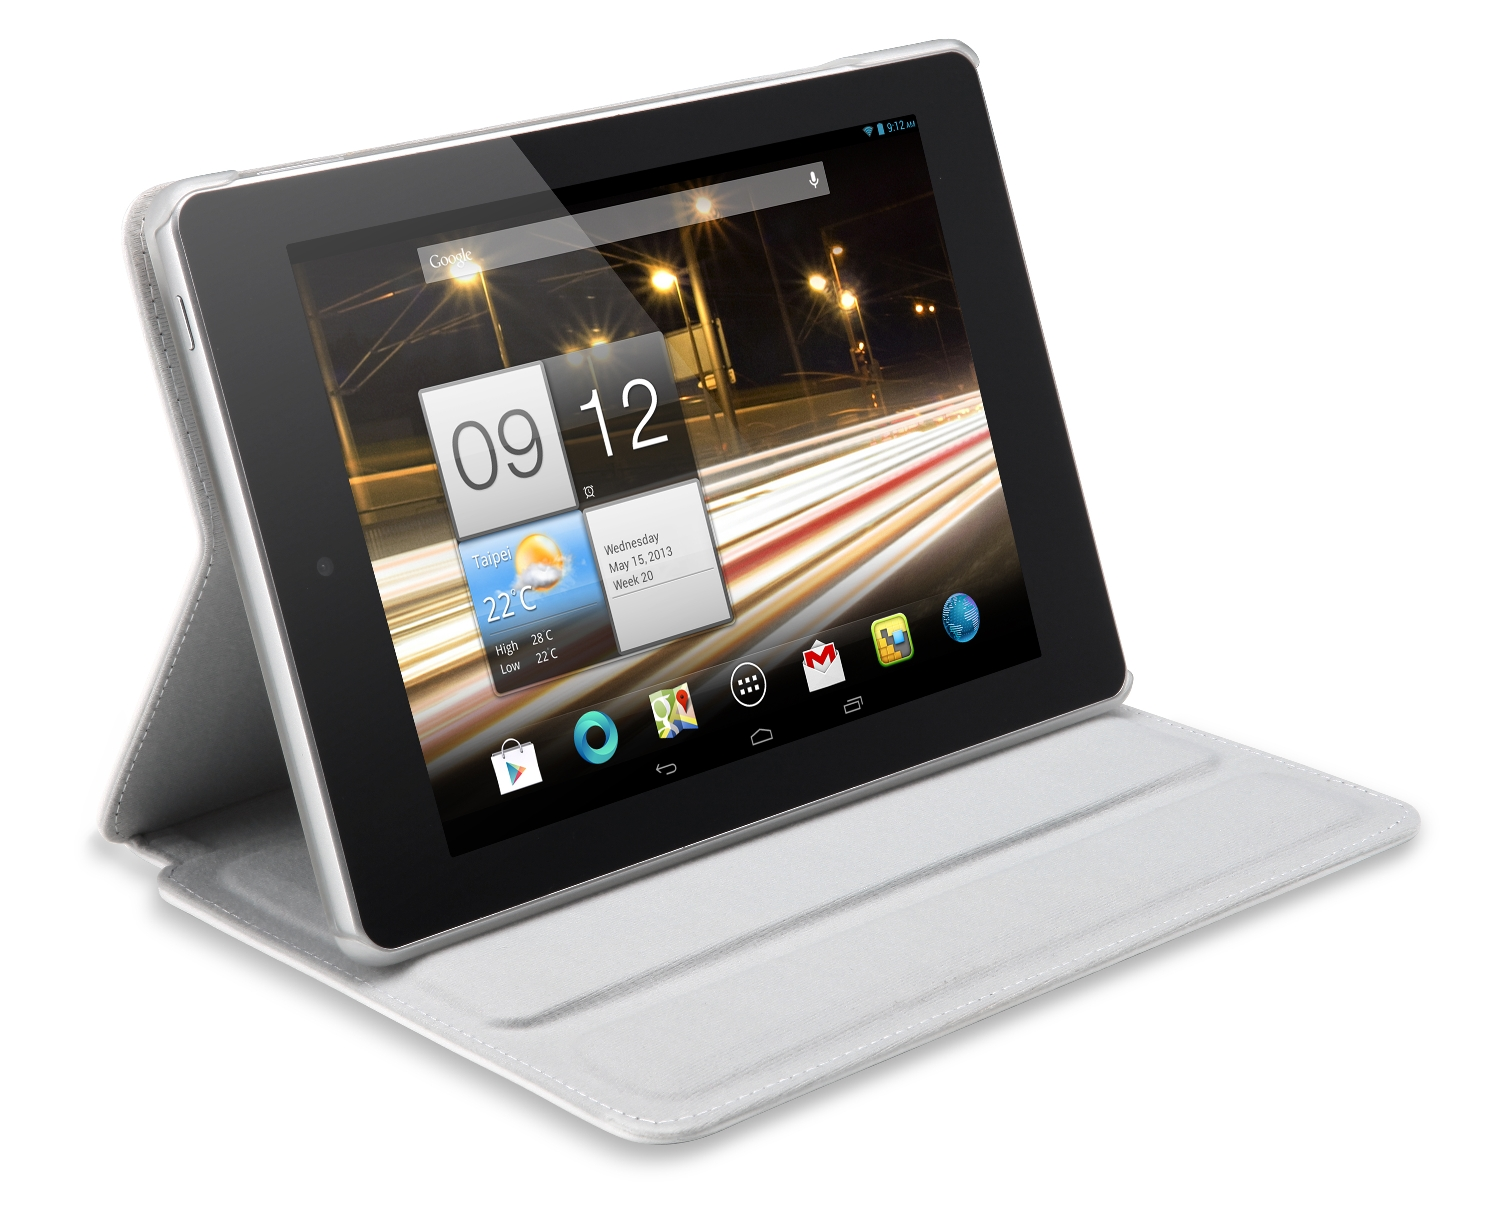 acer iconia a1 810 released in us 199 for 16gb 7 9 inch tablet. Black Bedroom Furniture Sets. Home Design Ideas